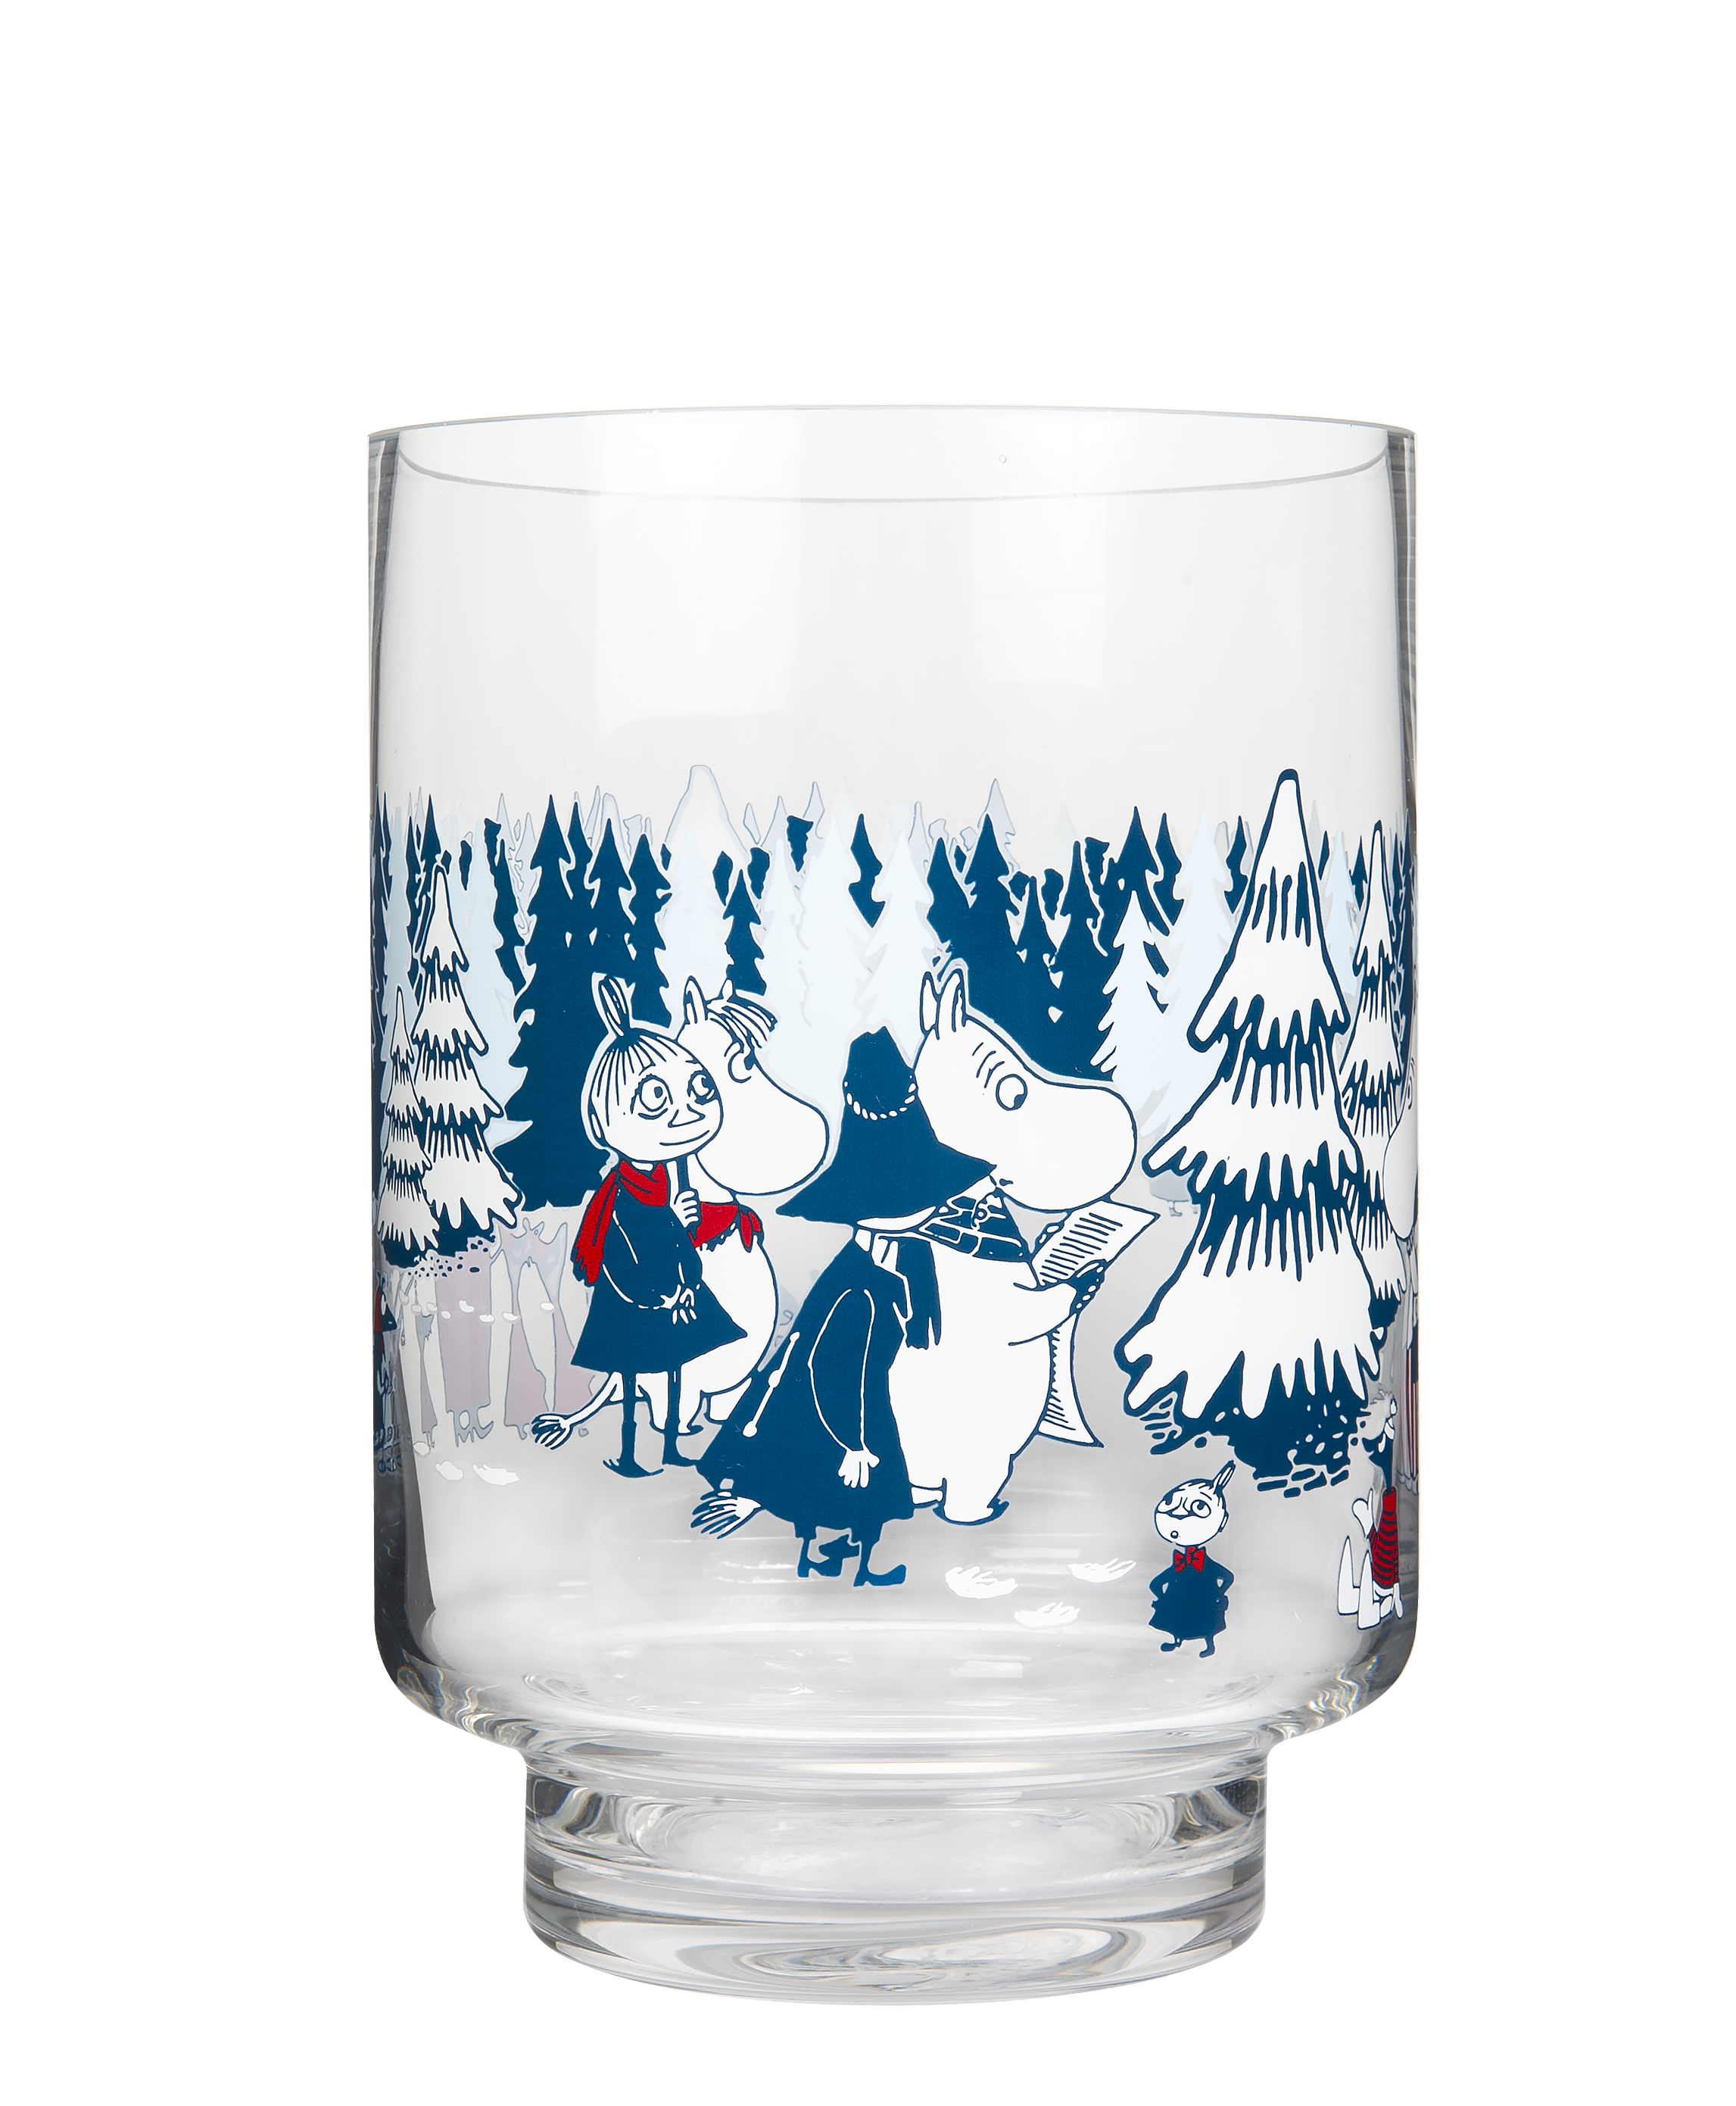 Muurla Moomin Winter Forest hurricane 20 cm